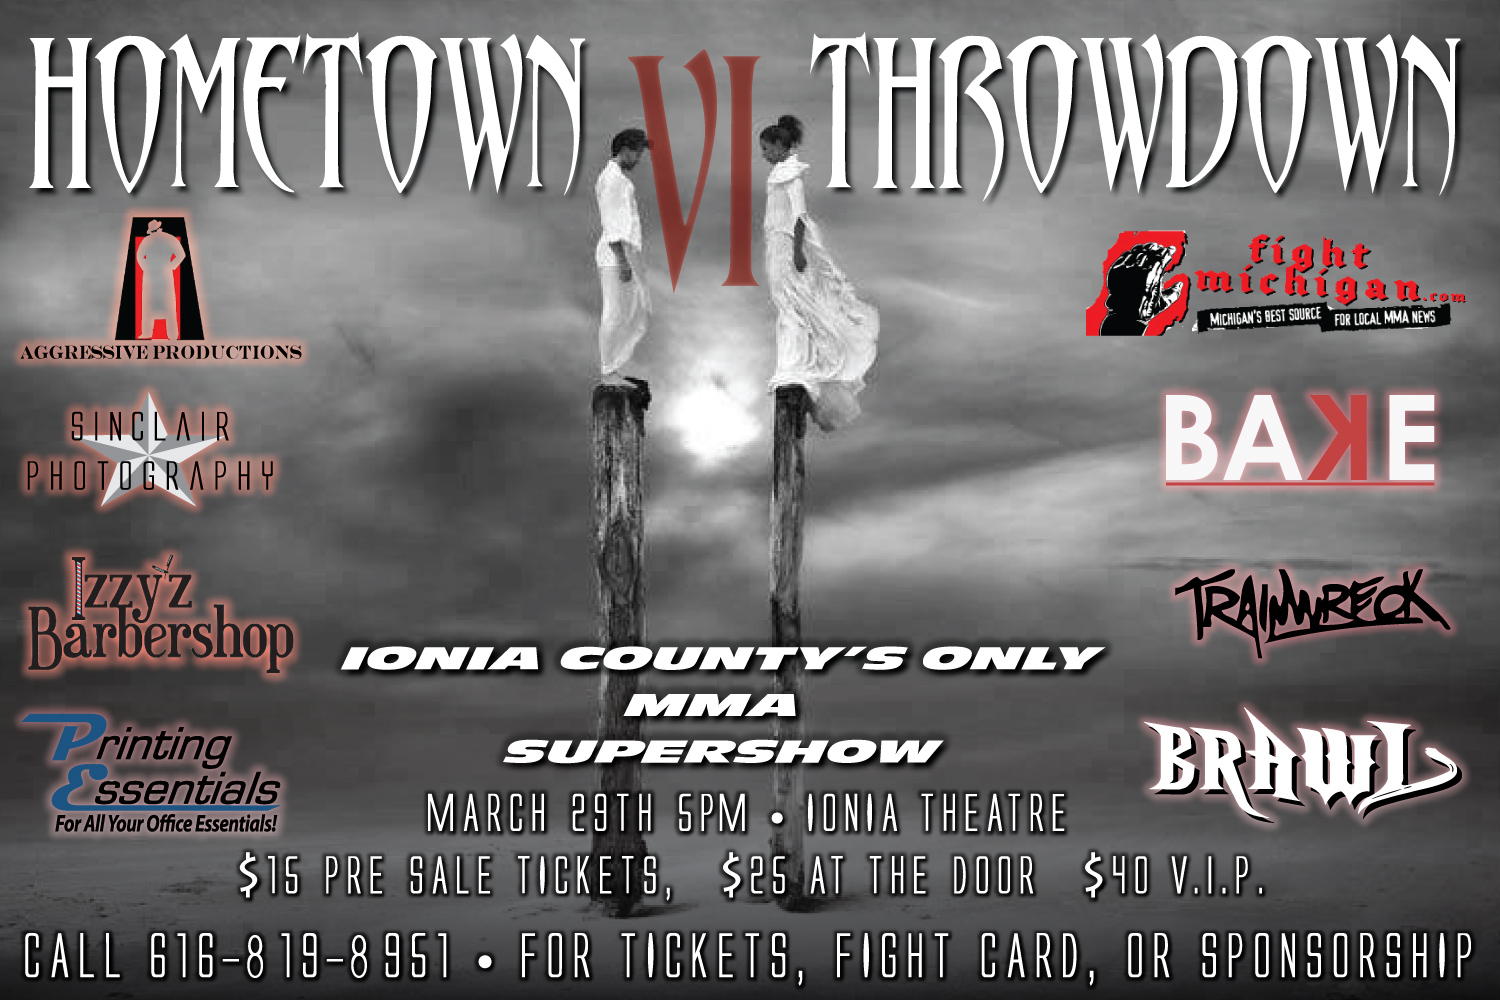 Hometown Throwdown 6